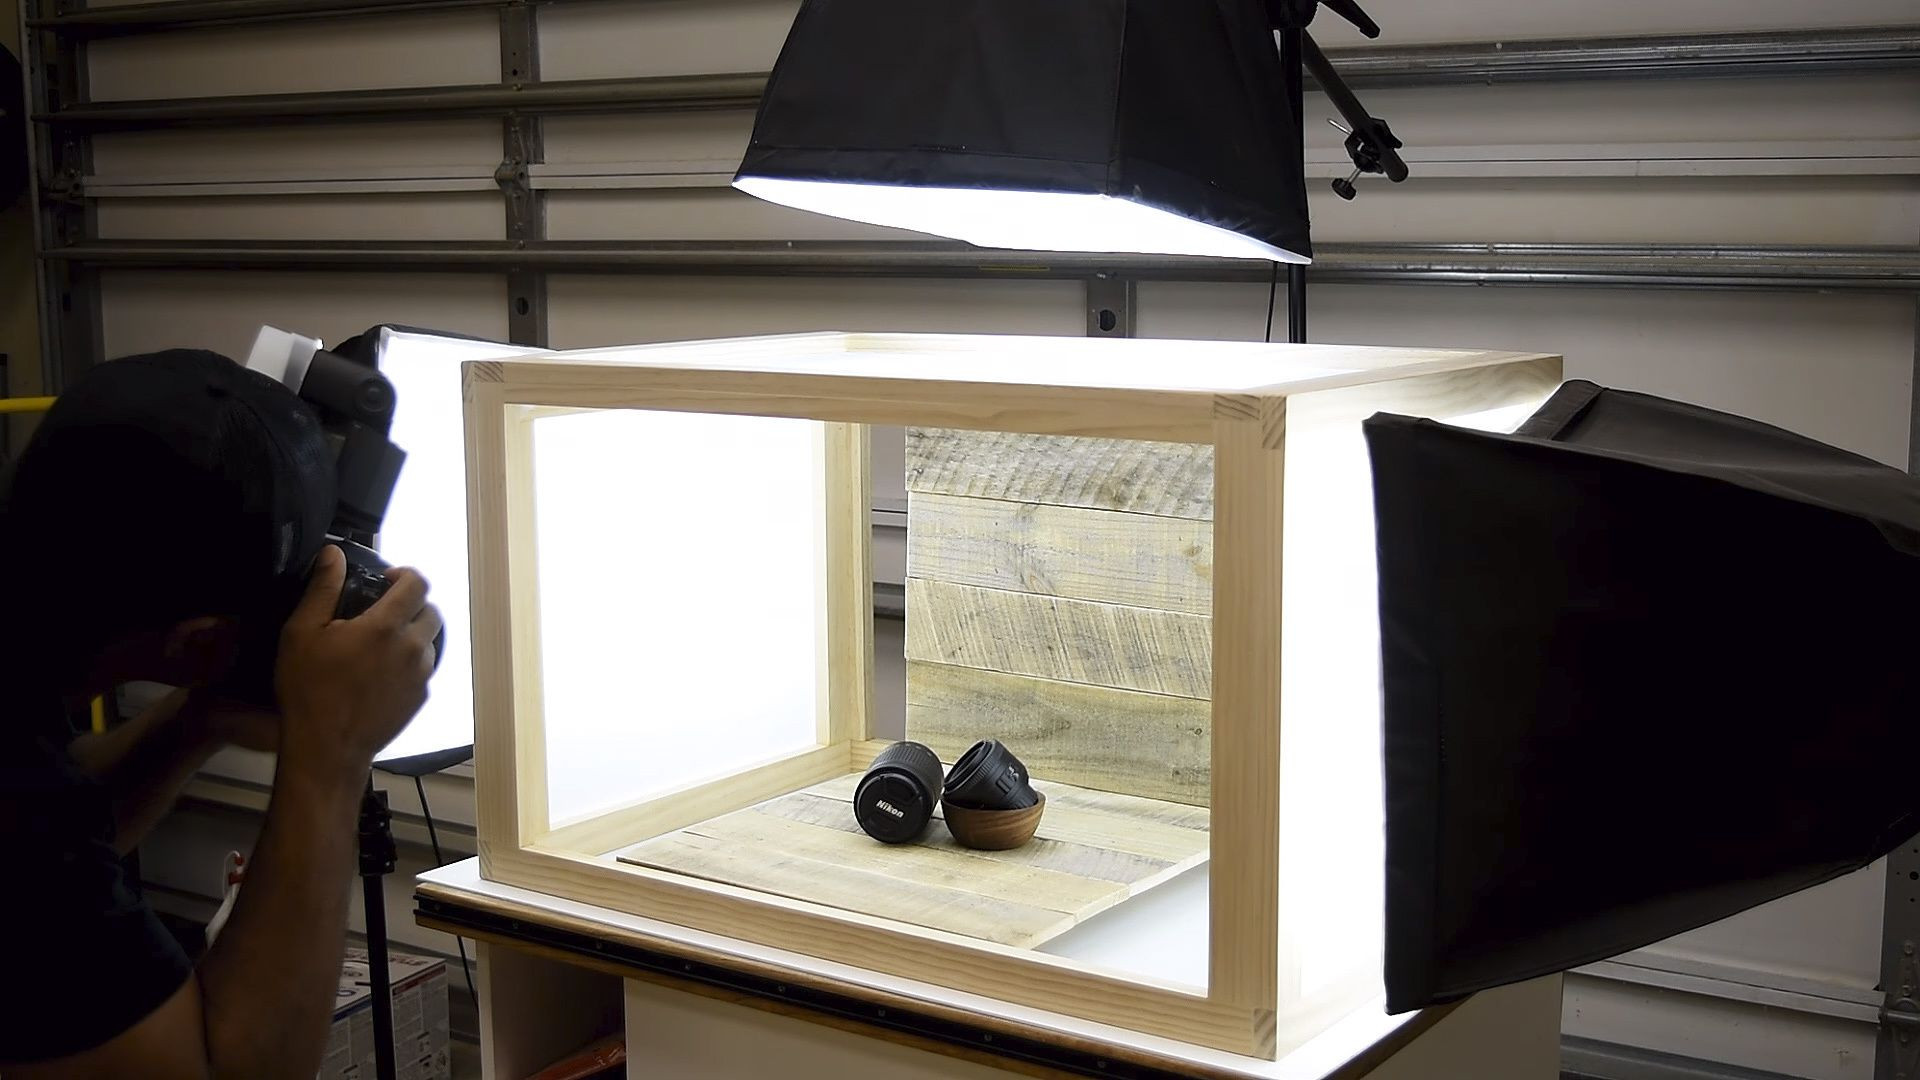 Best ideas about DIY Photo Studio Box . Save or Pin How to construct the world s most well built and best Now.